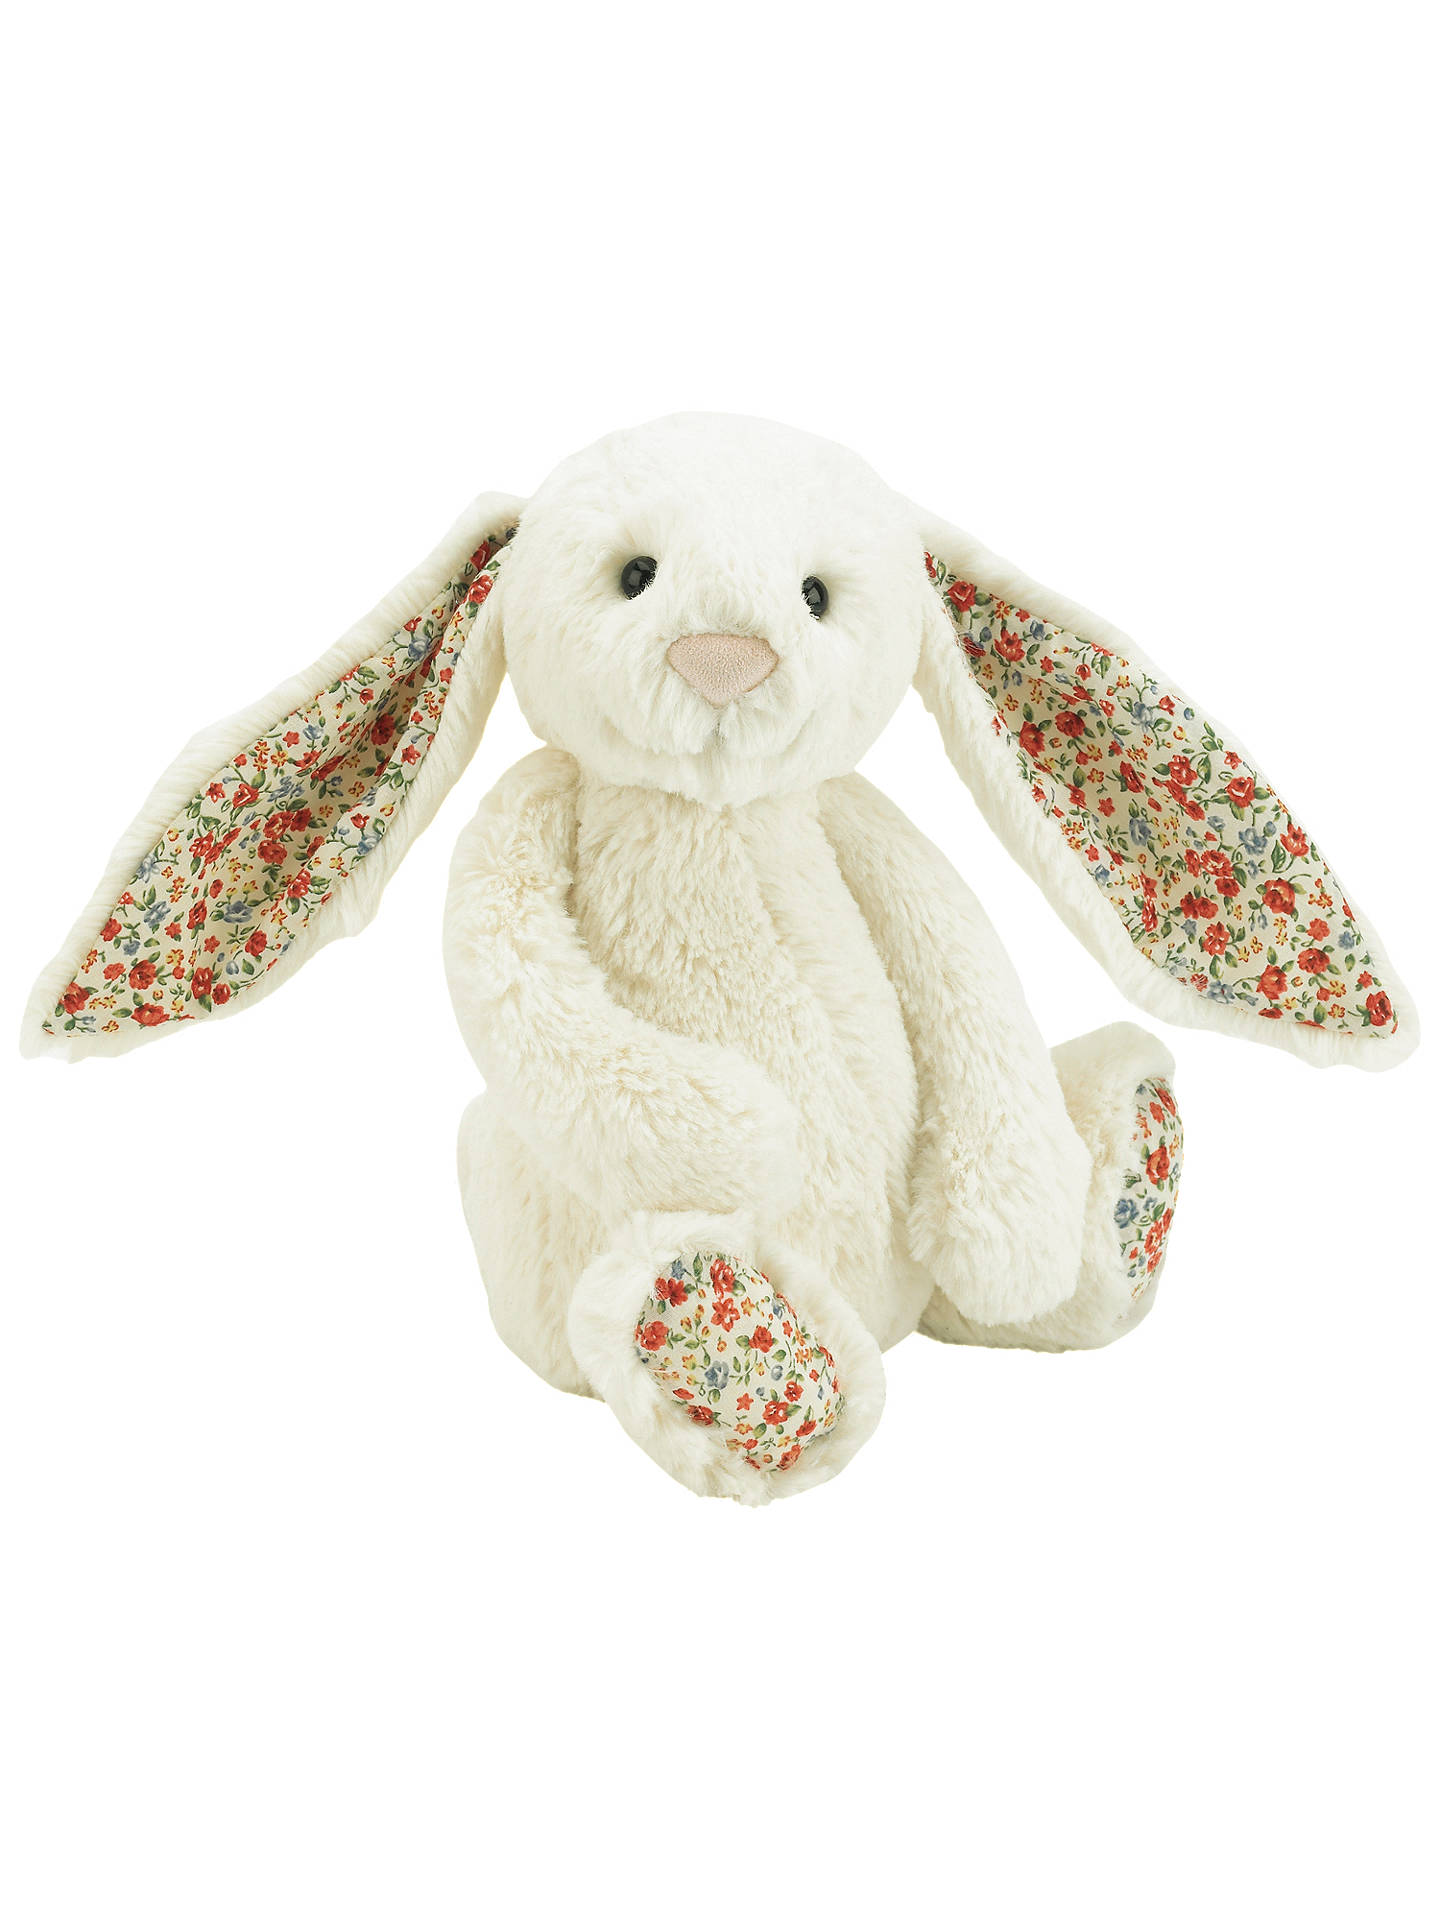 Jellycat Blossom Bunny Soft Toy, Medium, Cream